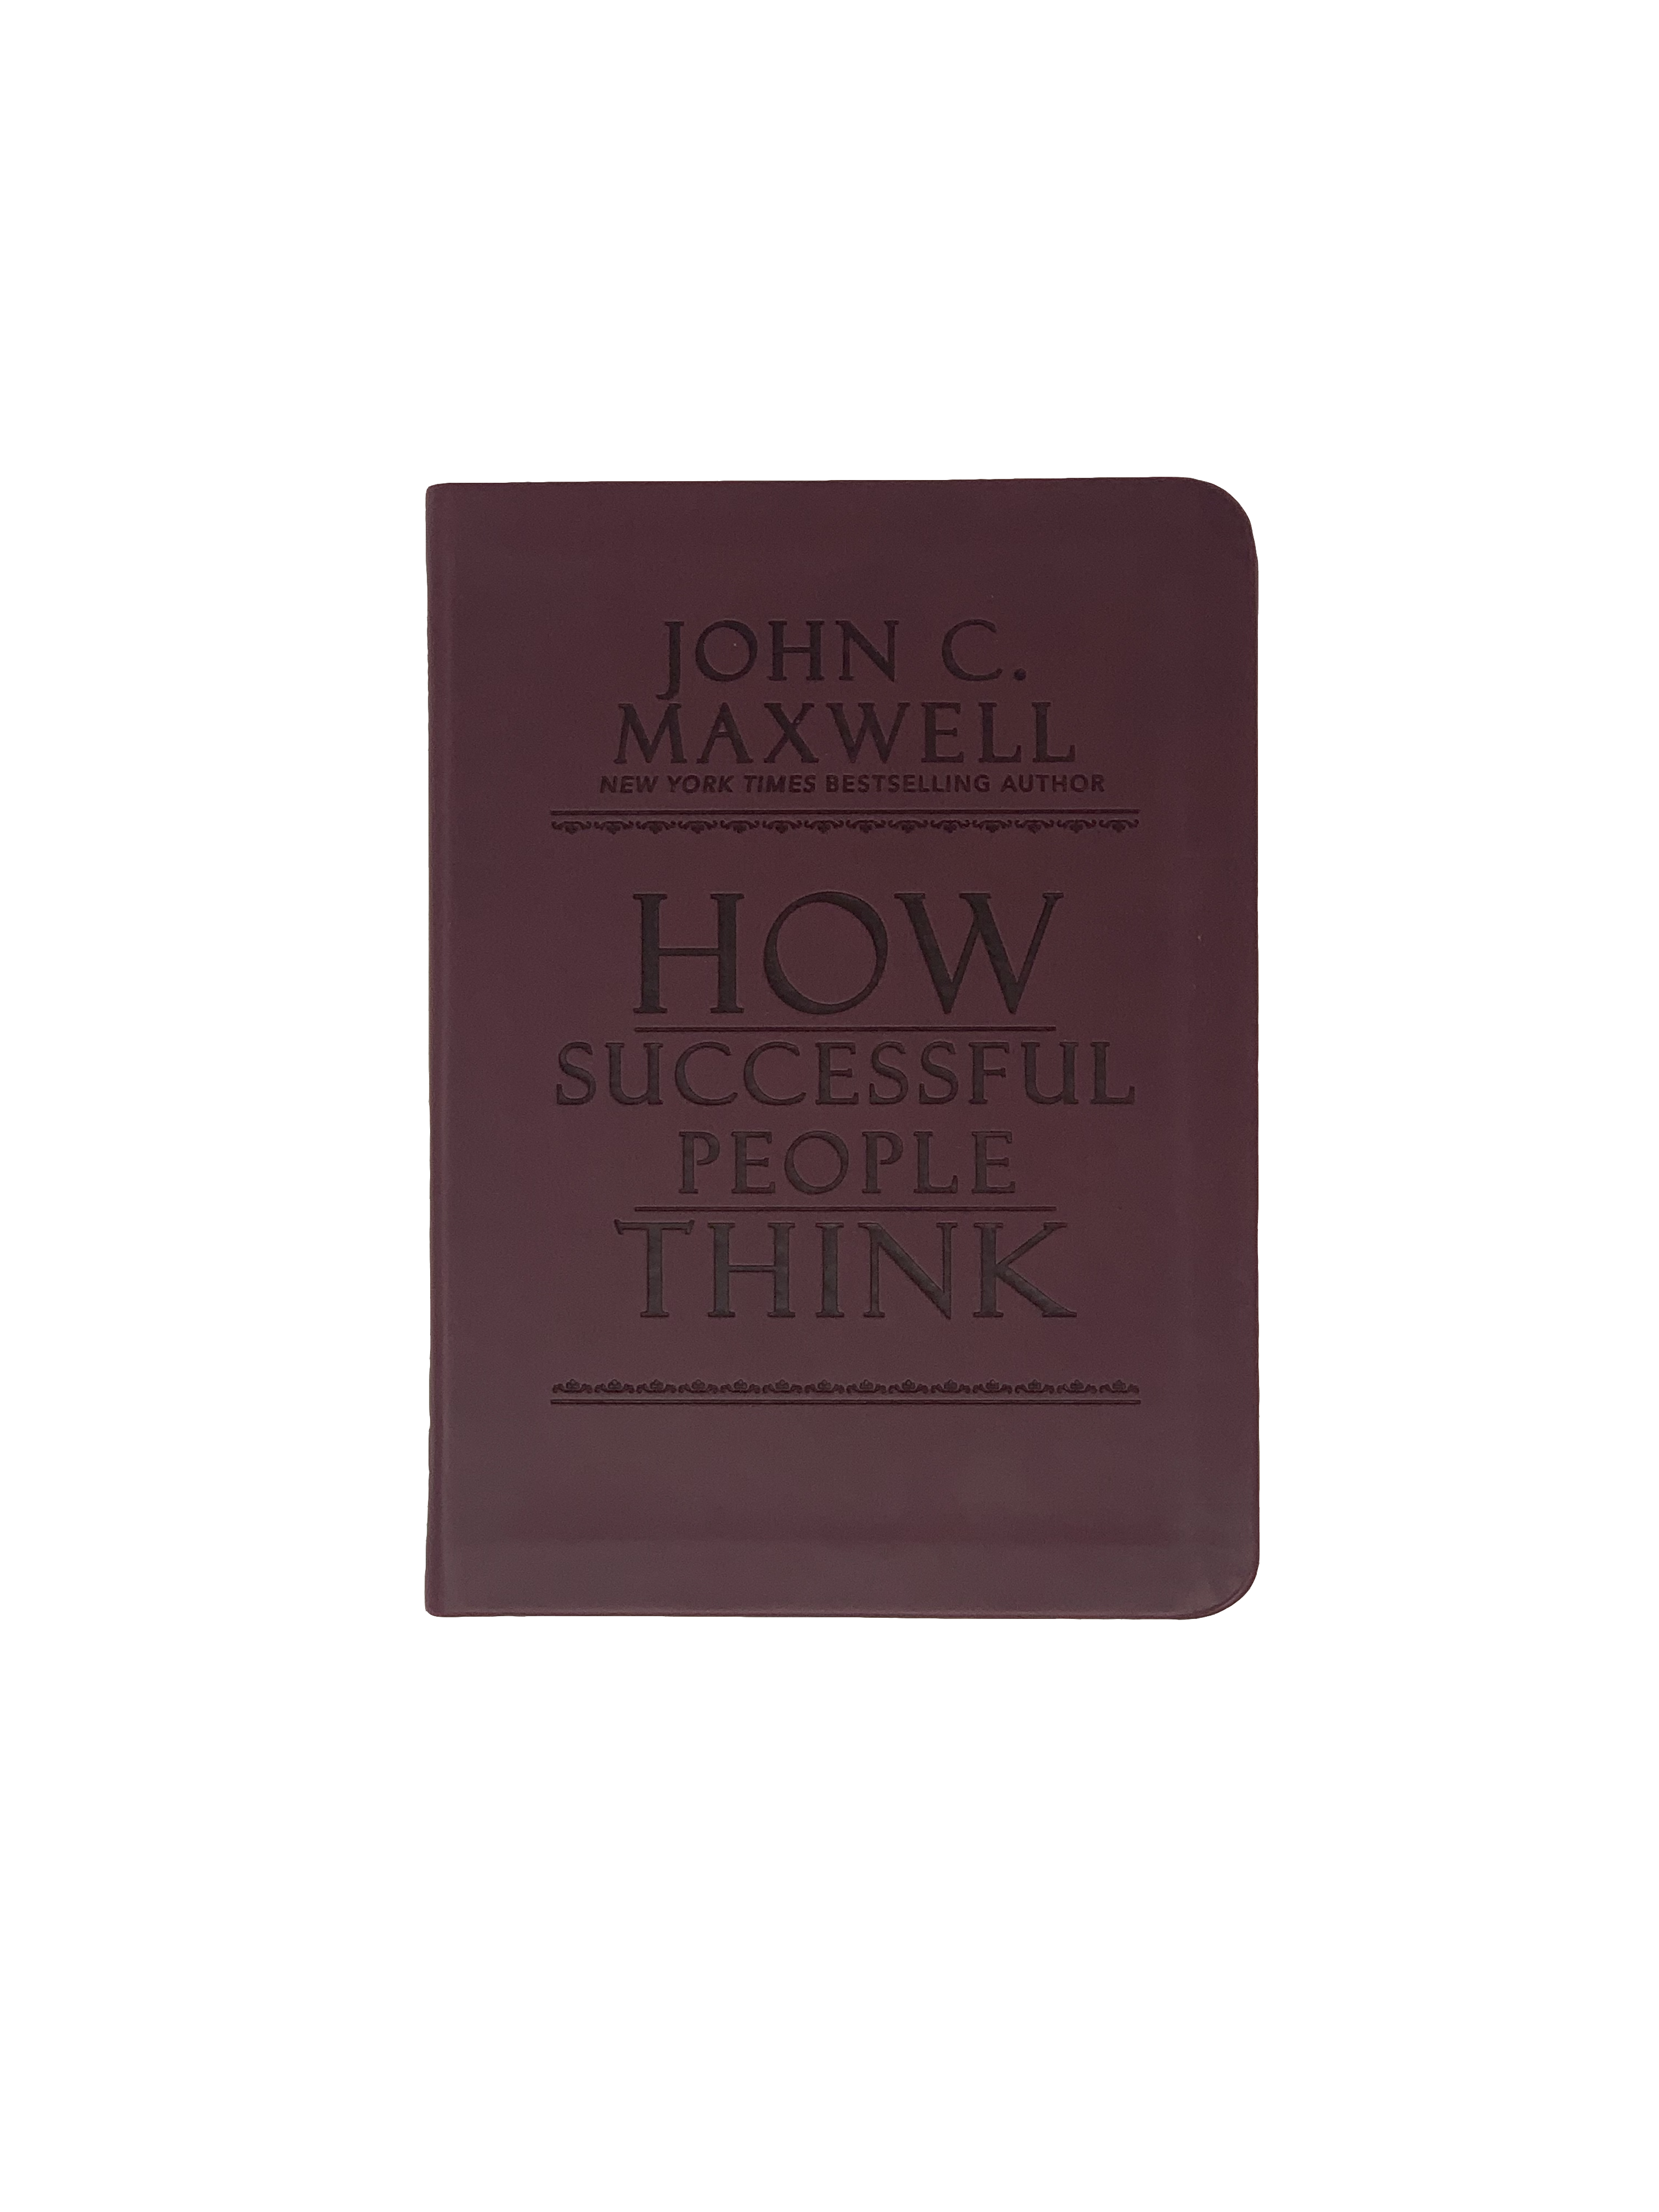 How Successful People Think: Change Your Thinking, Change Your Life [Soft Touch Cover]